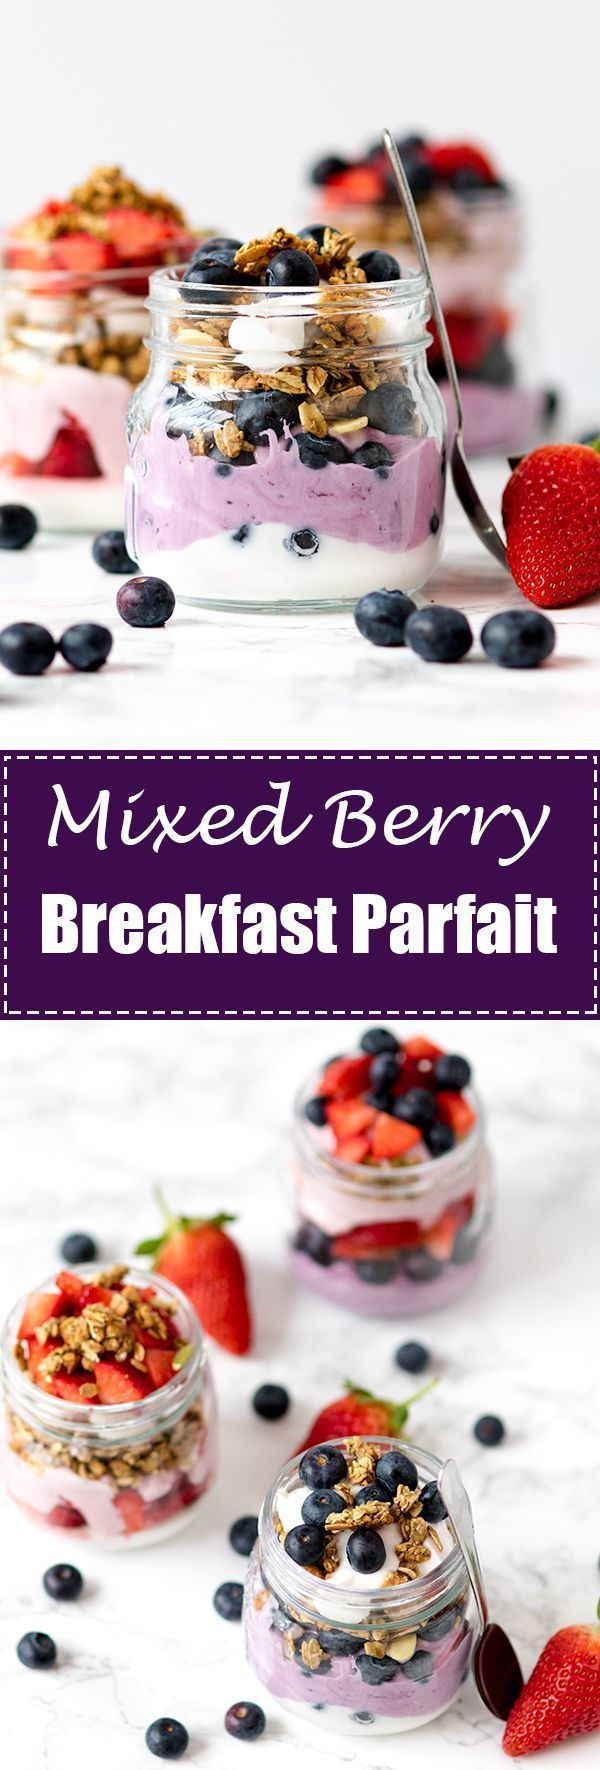 A light and creamy parfait that makes a luxurious breakfast treat!